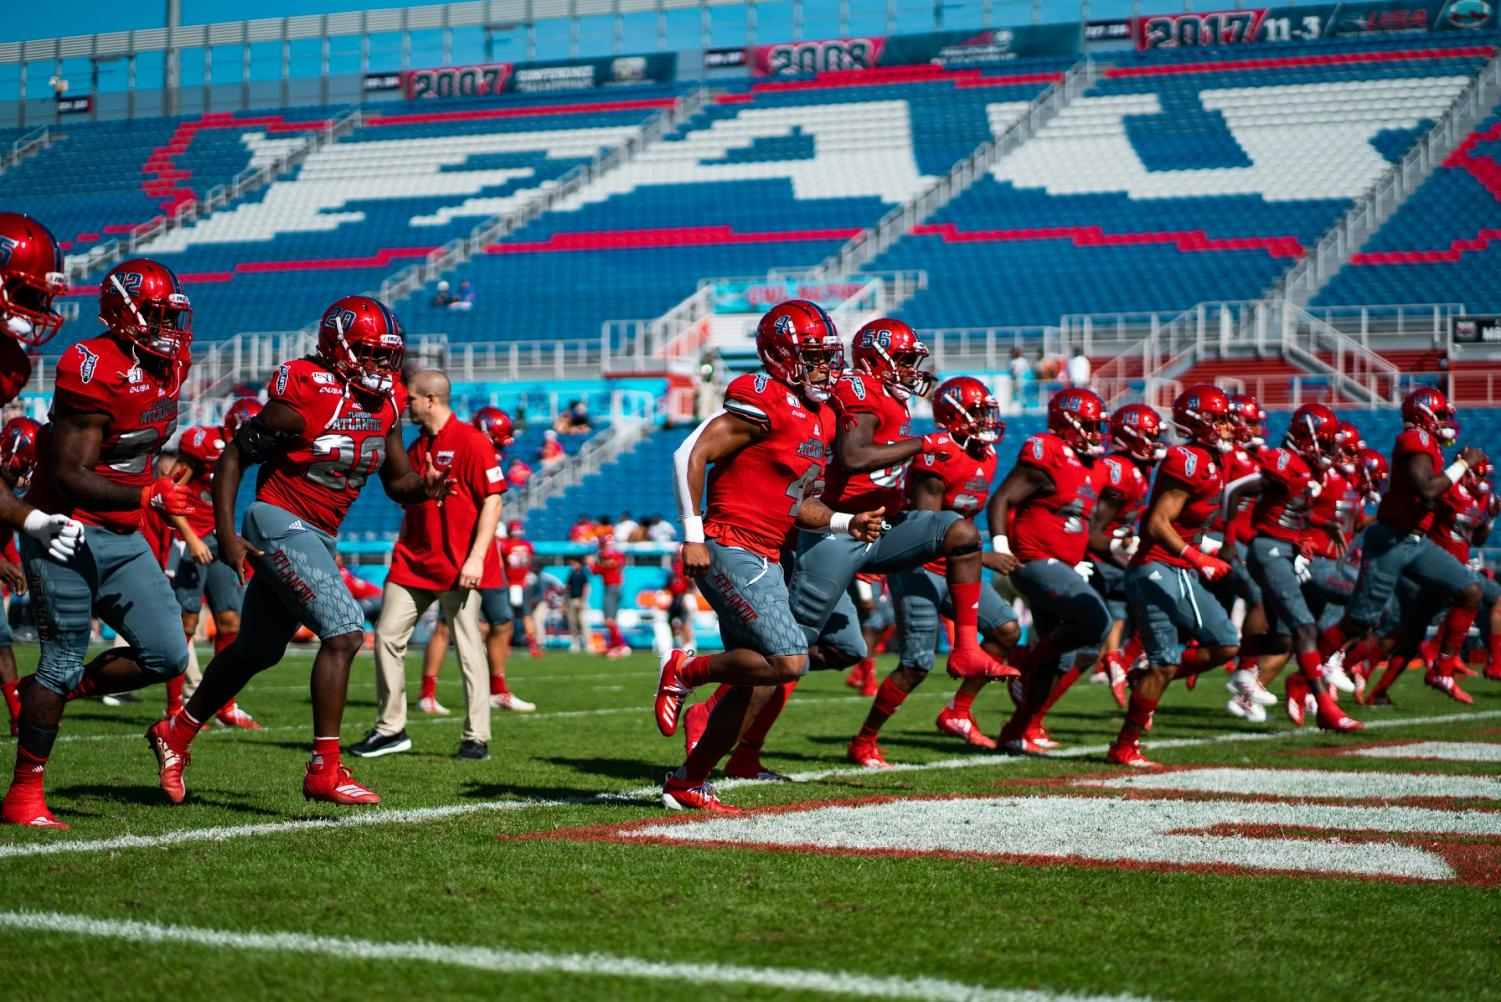 The Owls will try to stay undefeated in bowl games against SMU today. Photo by: Alex Liscio.